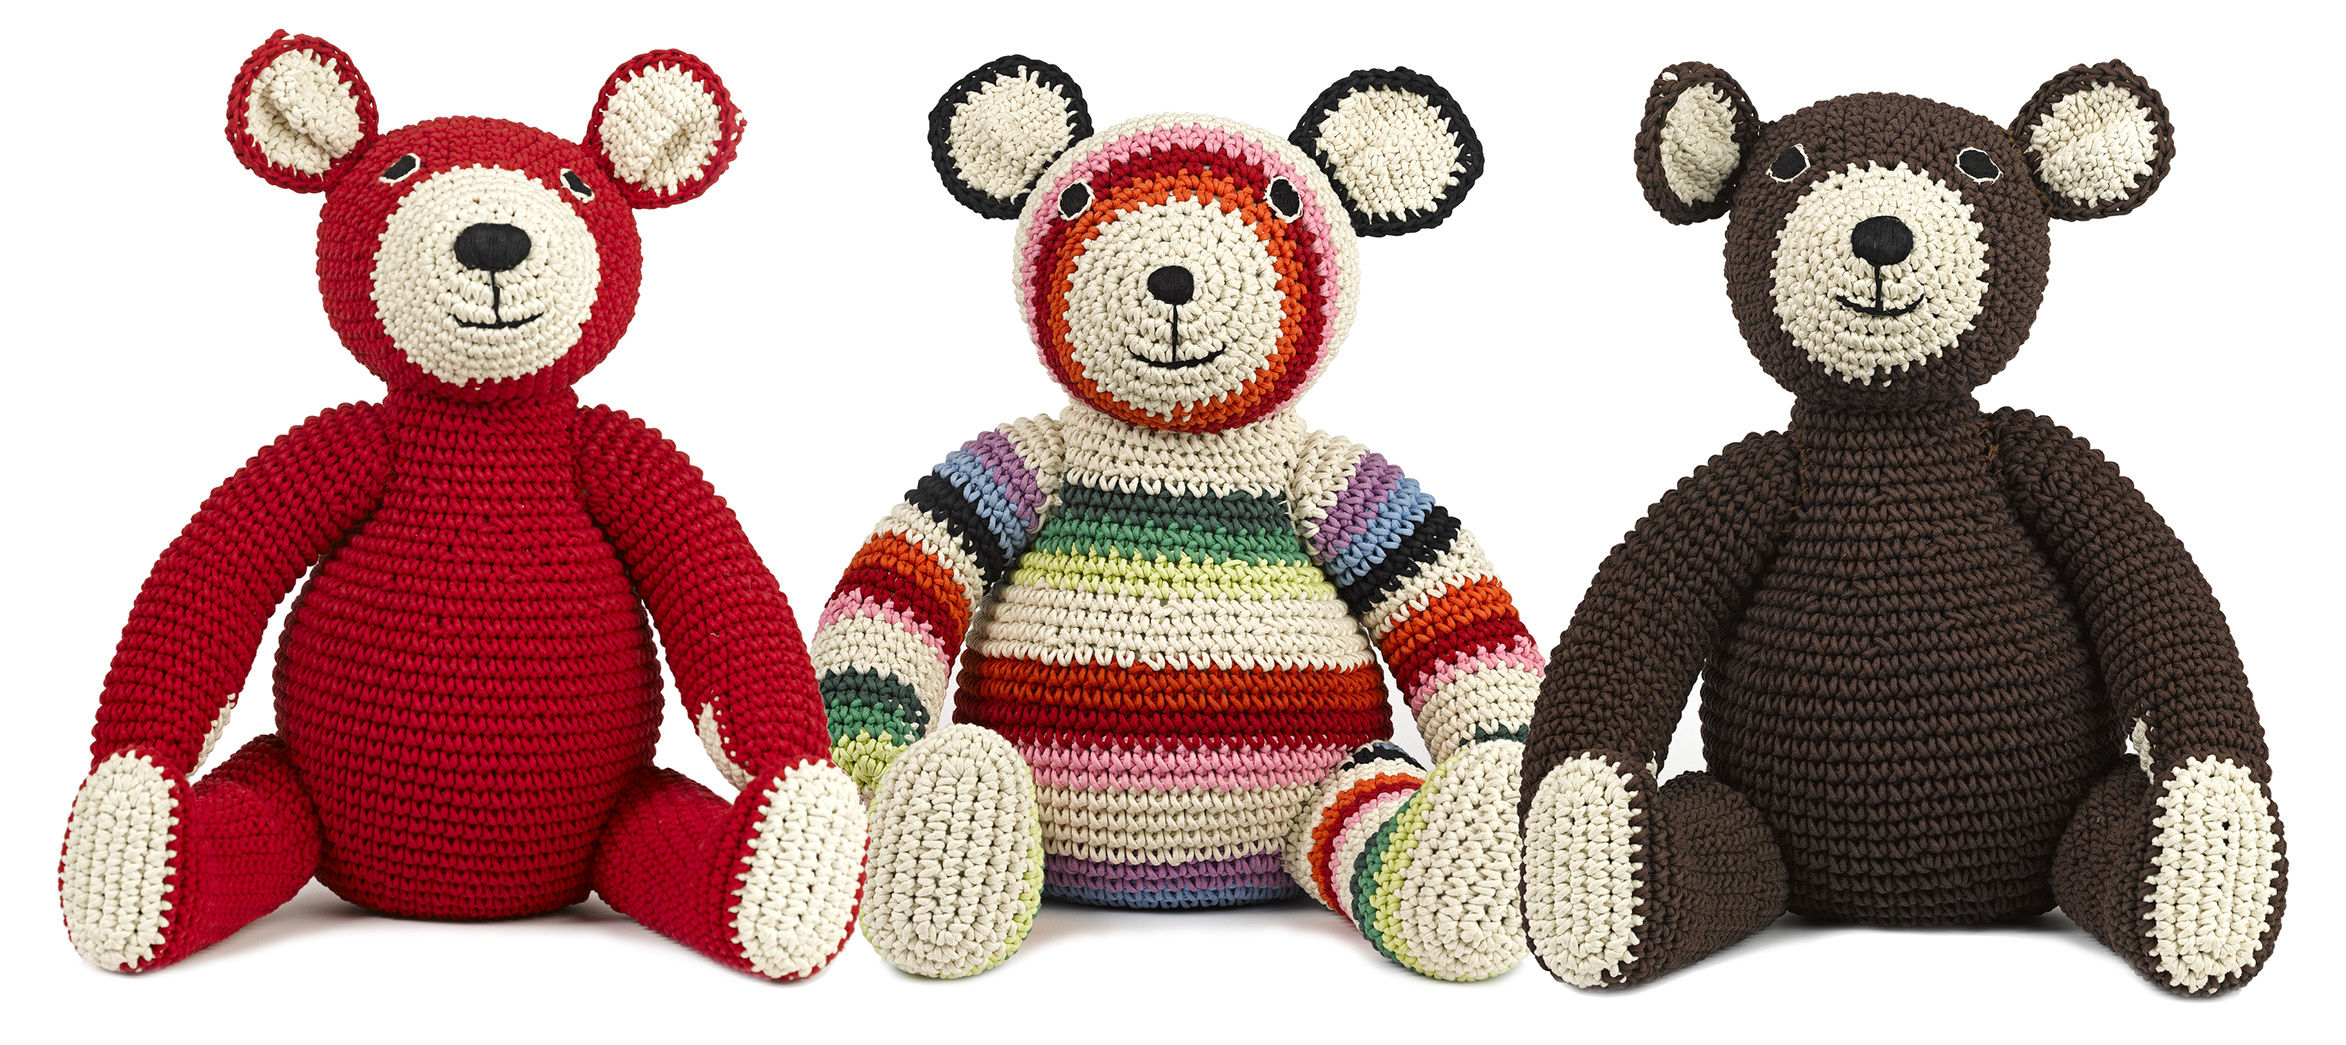 mama teddy cuddly toy crochet cuddly toy red by anne claire petit. Black Bedroom Furniture Sets. Home Design Ideas